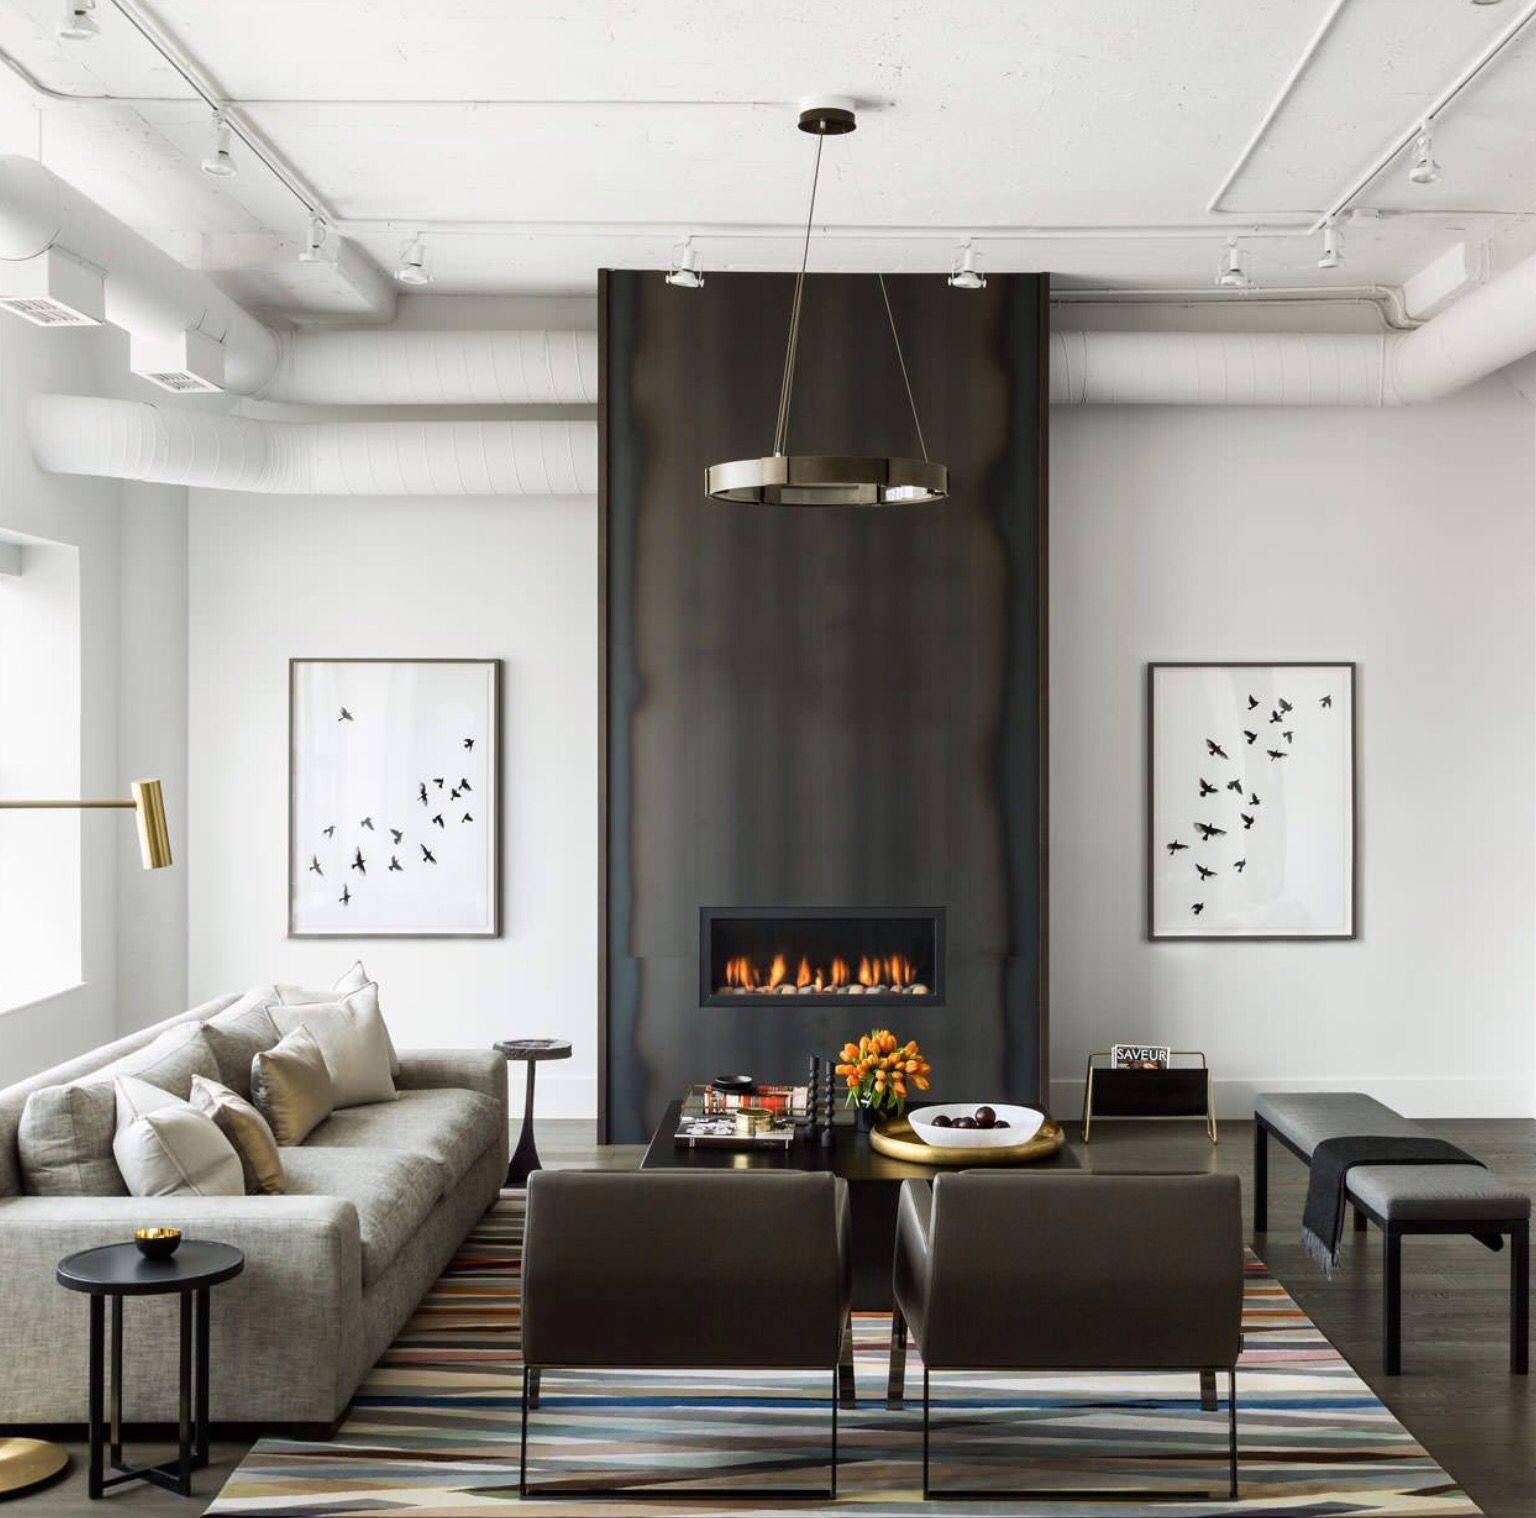 houzz living rooms with hardwood floors of this hot rolled steel fireplace surround is stunning uploaded from within this hot rolled steel fireplace surround is stunning uploaded from houzz